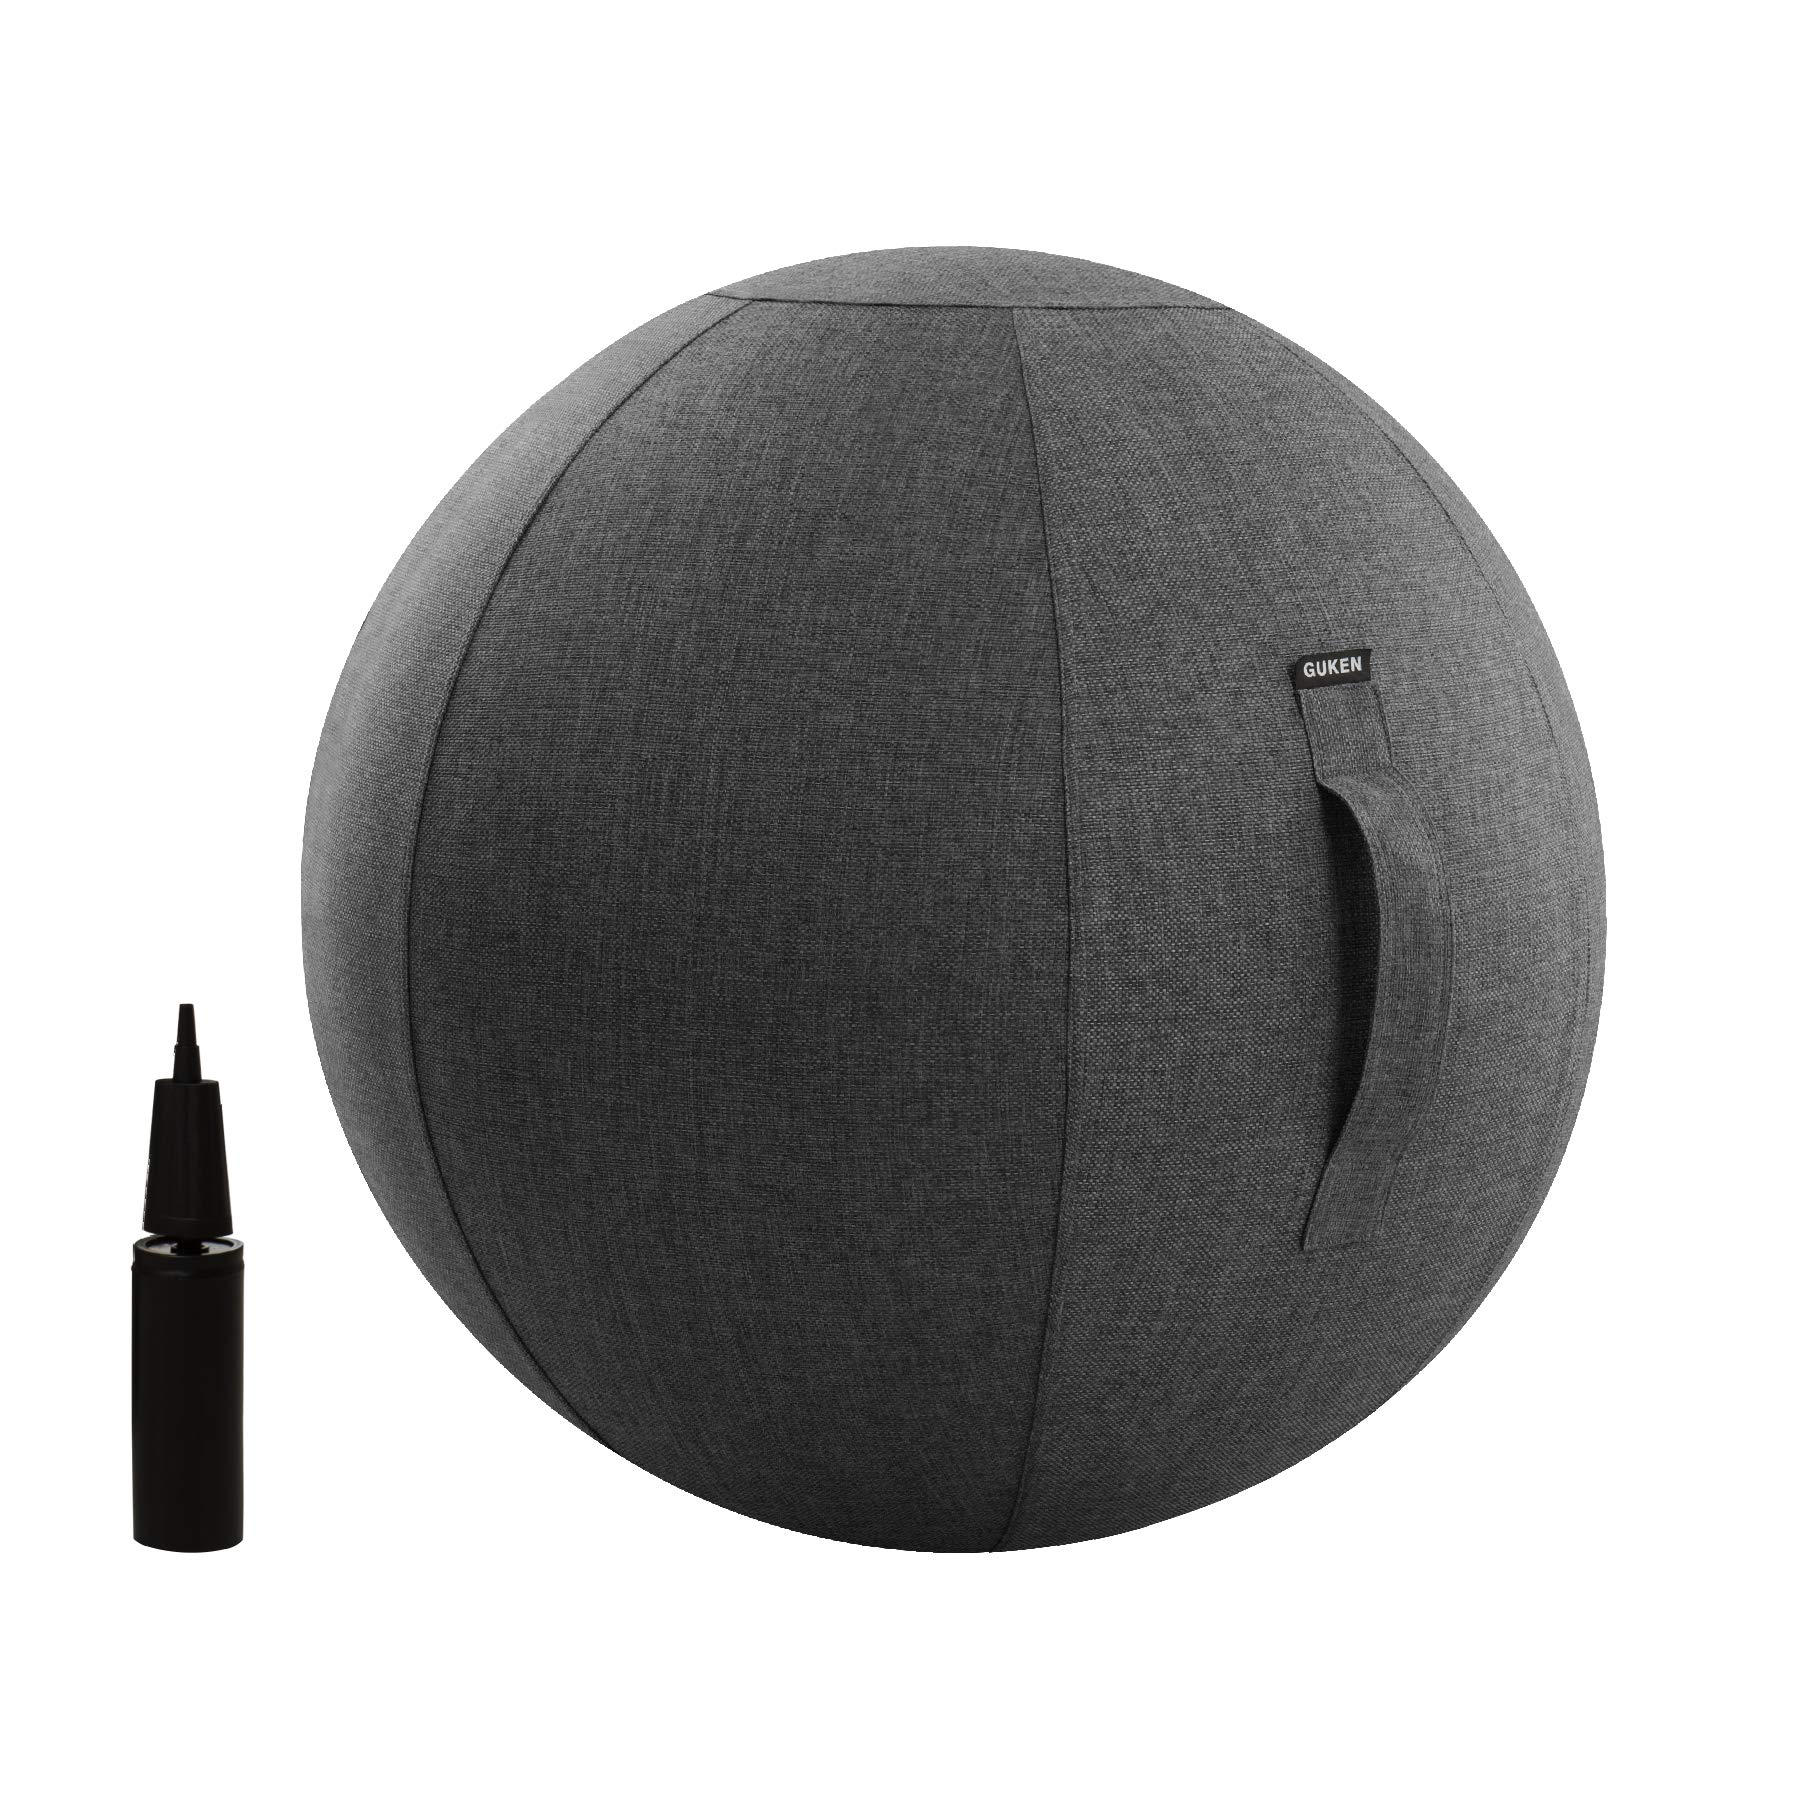 Exercise Ball (75cm Gray) Extra Thick Yoga Ball Chair,Yoga Ball Cover Anti-Burst Heavy Duty Stability Ball Supports 2200lbs, Fitness and Birthing Ball with Inflator and Handle(Office & Home & Gym)